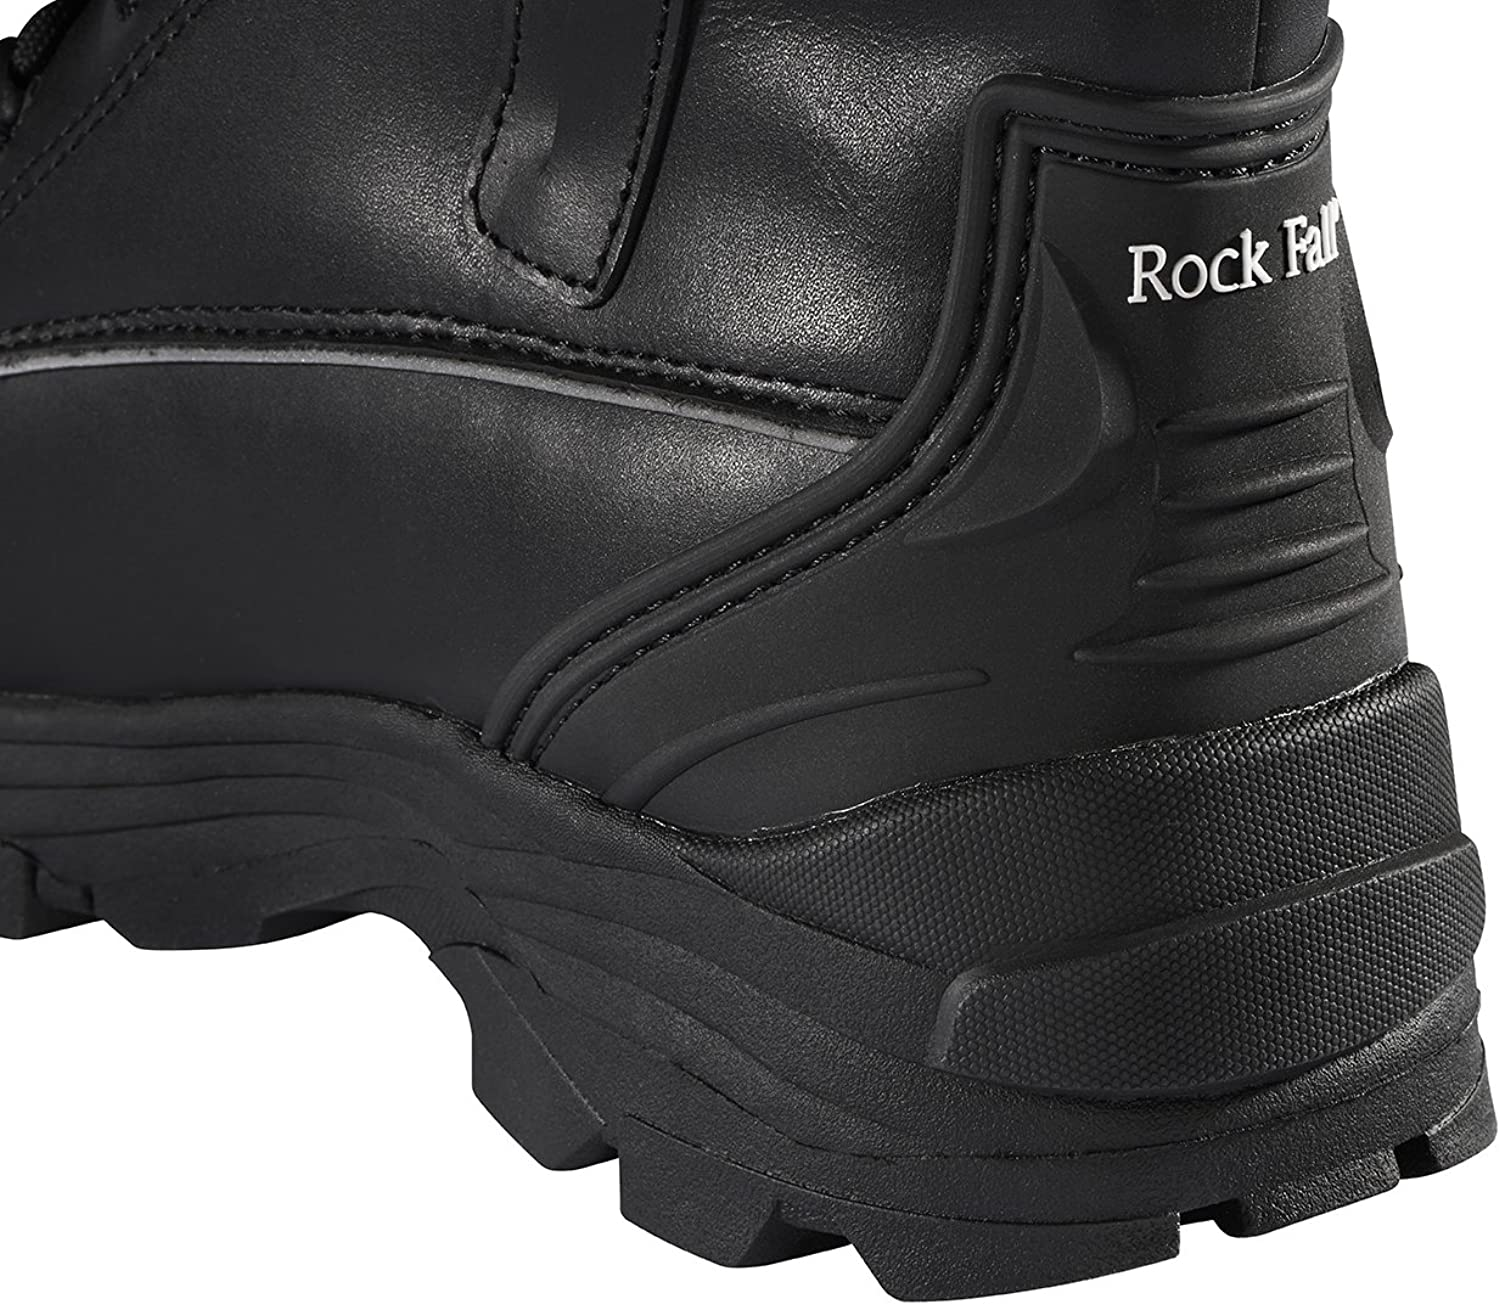 Rock Fall Shale RF15 Black S3 High Leg Steel Toe Water Resistant Safety Boots